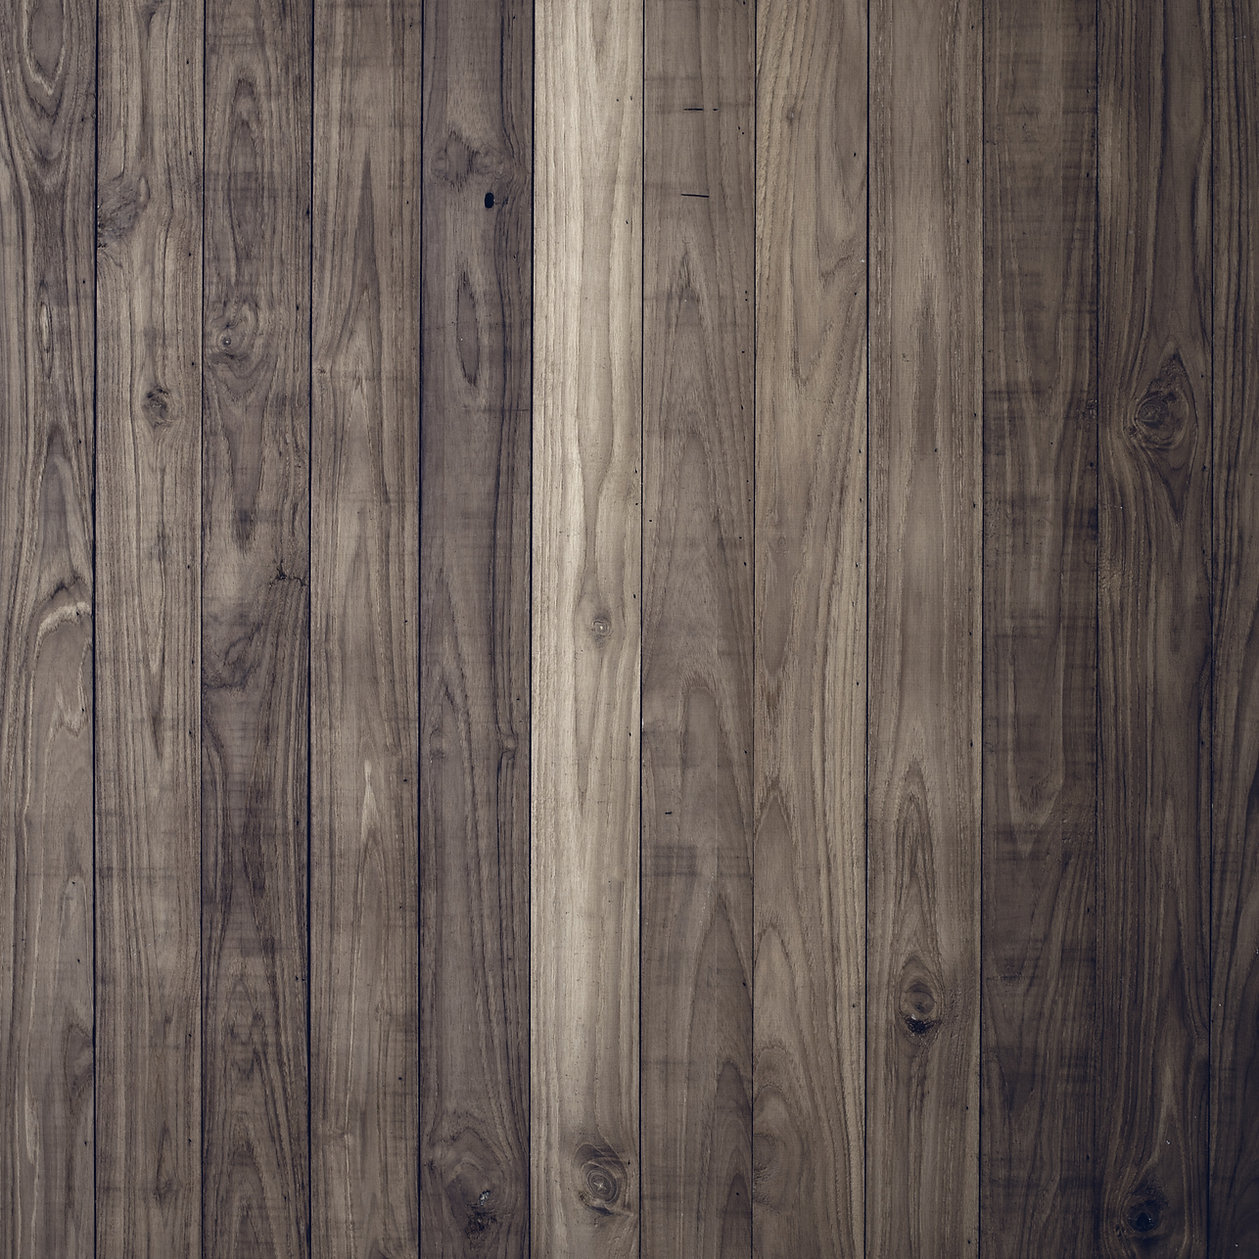 Dark Brown wood plank wall texture backg